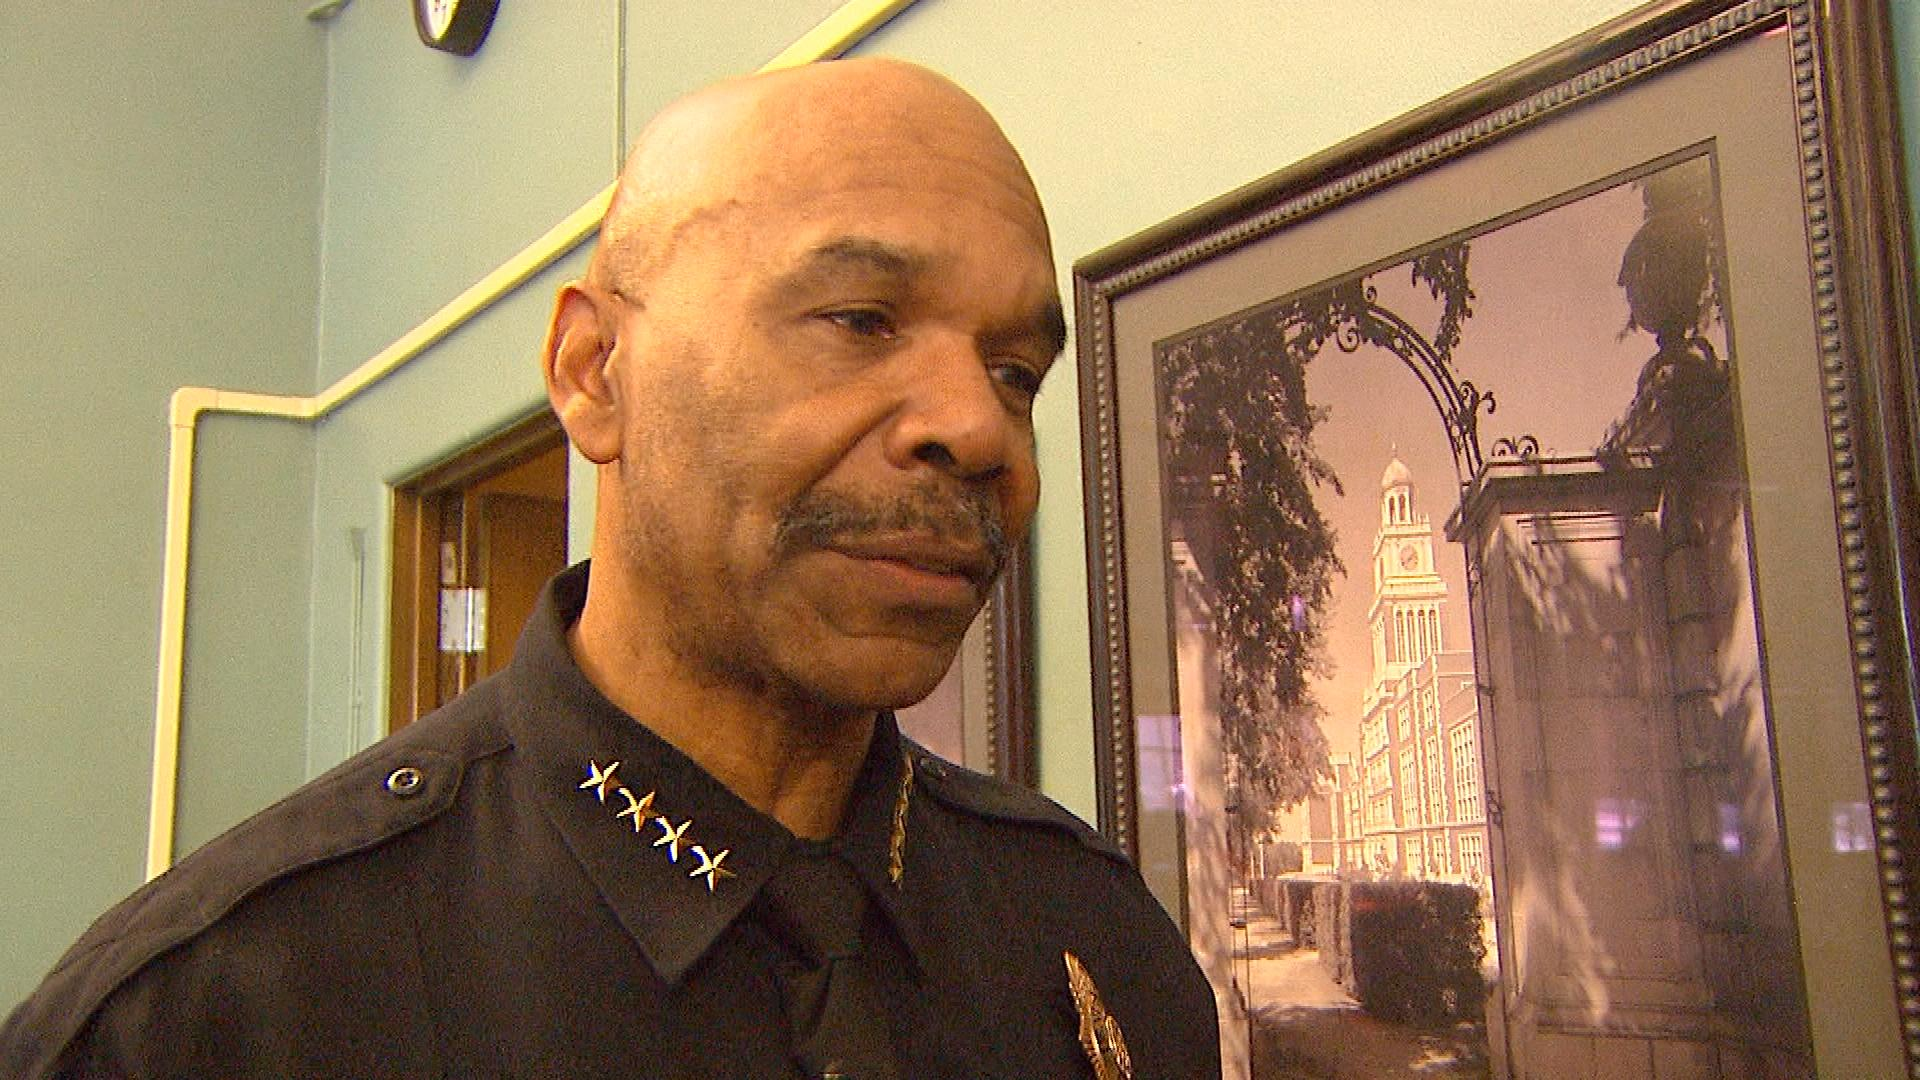 Denver Police Chief Robert White at the meeting on Monday (credit: CBS)